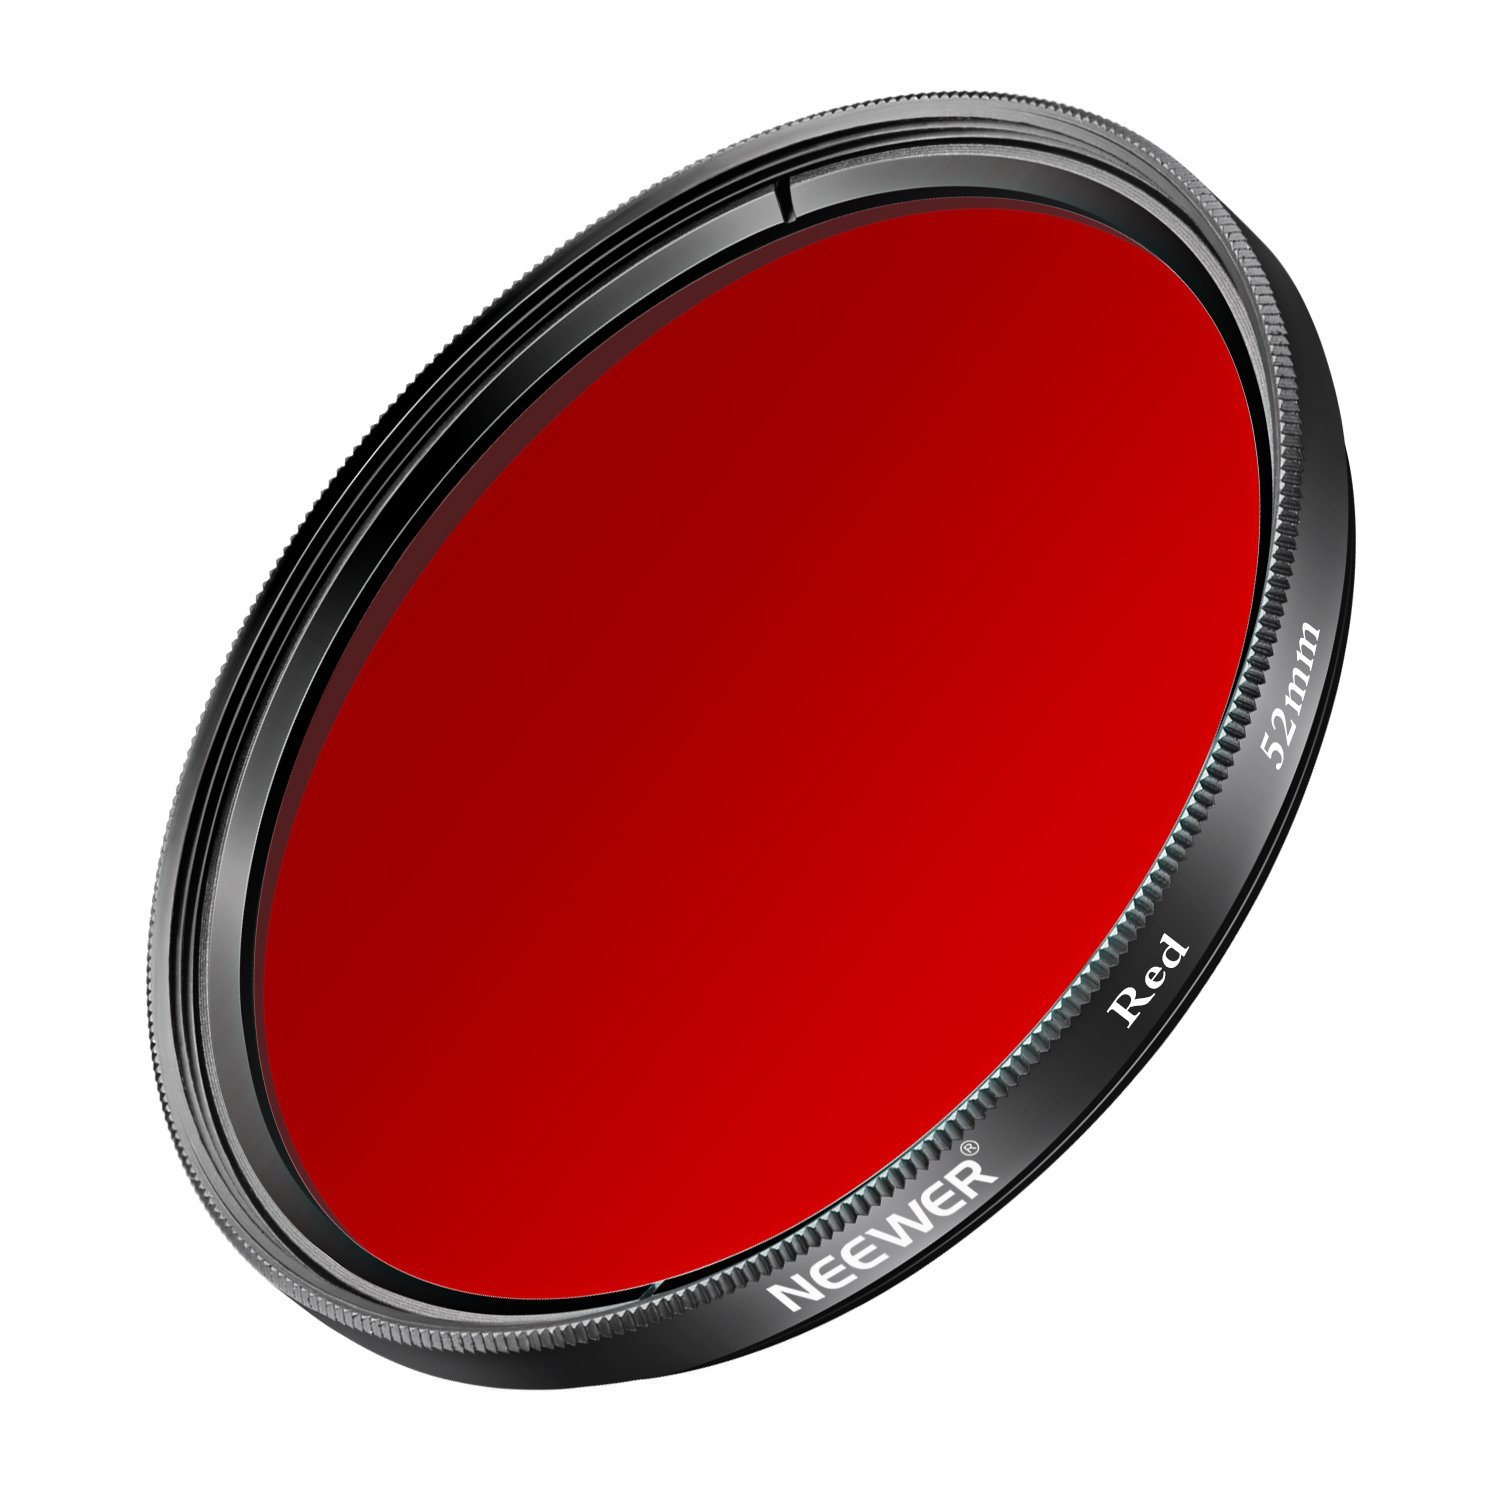 Neewer 52MM Red Filter for Nikon D3300 D3200 D3100 D3000 D5300 D5200 D5100 D5000 D7000 D7100 DSLR Camera, Made of HD Optical Glass and Aluminum Alloy Frame by Neewer